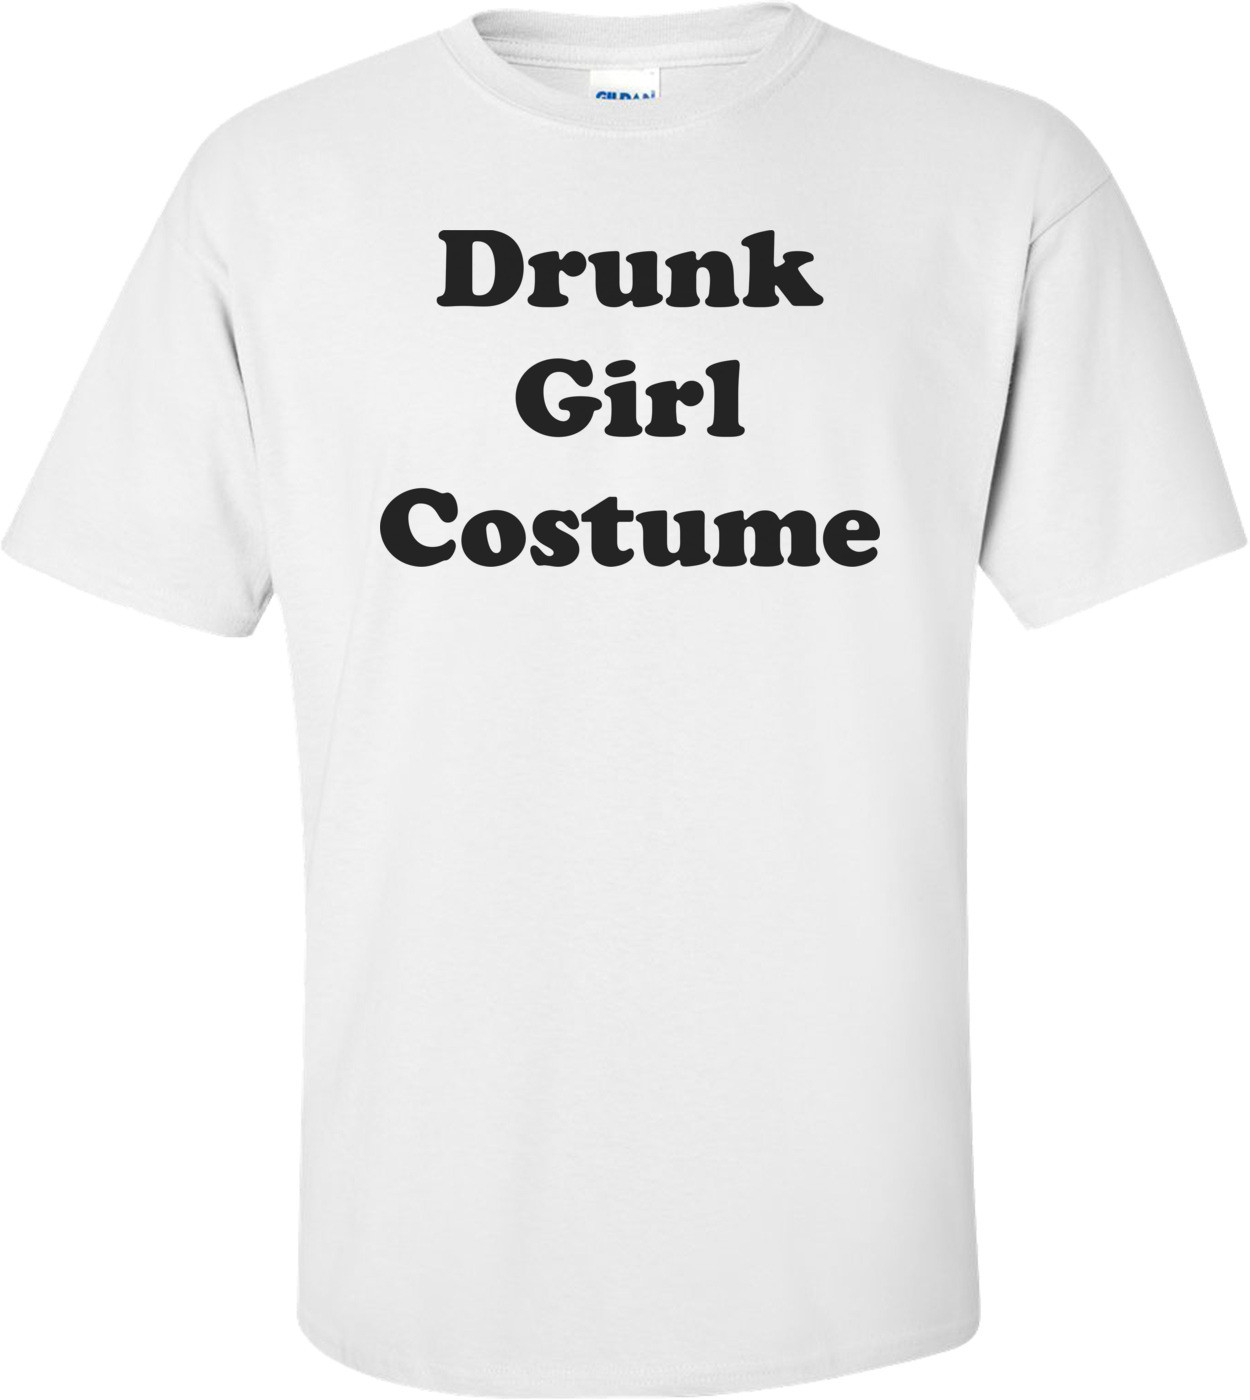 Drunk Girl Costume Shirt